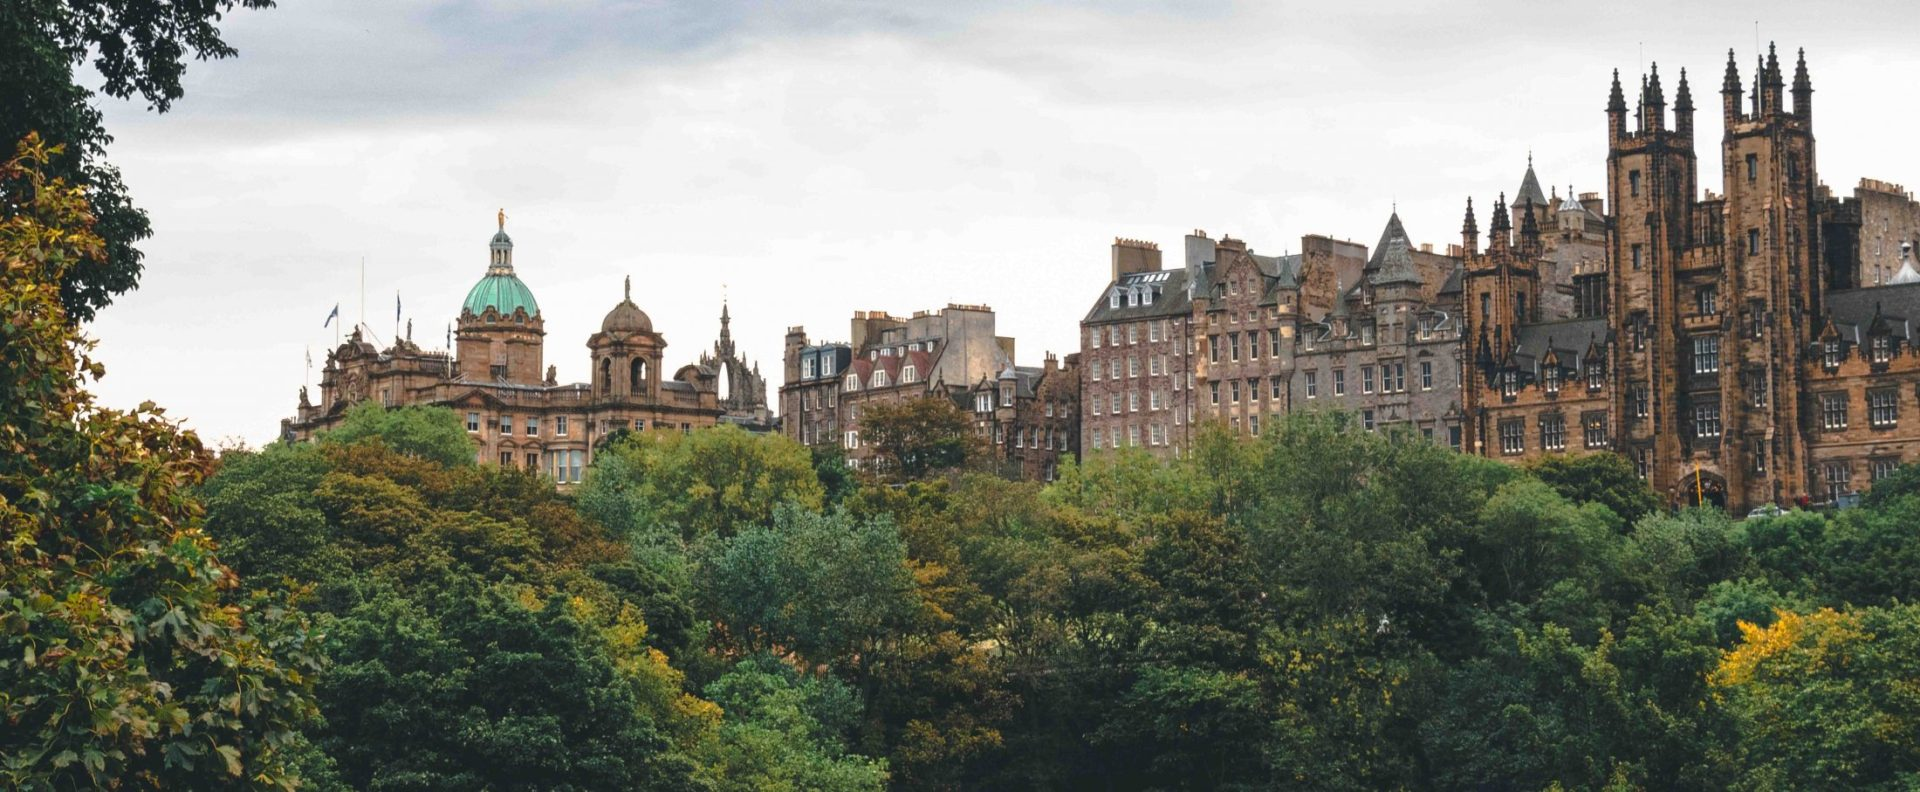 Our Hotels in Edinburgh Scotland | The Edinburgh Collection